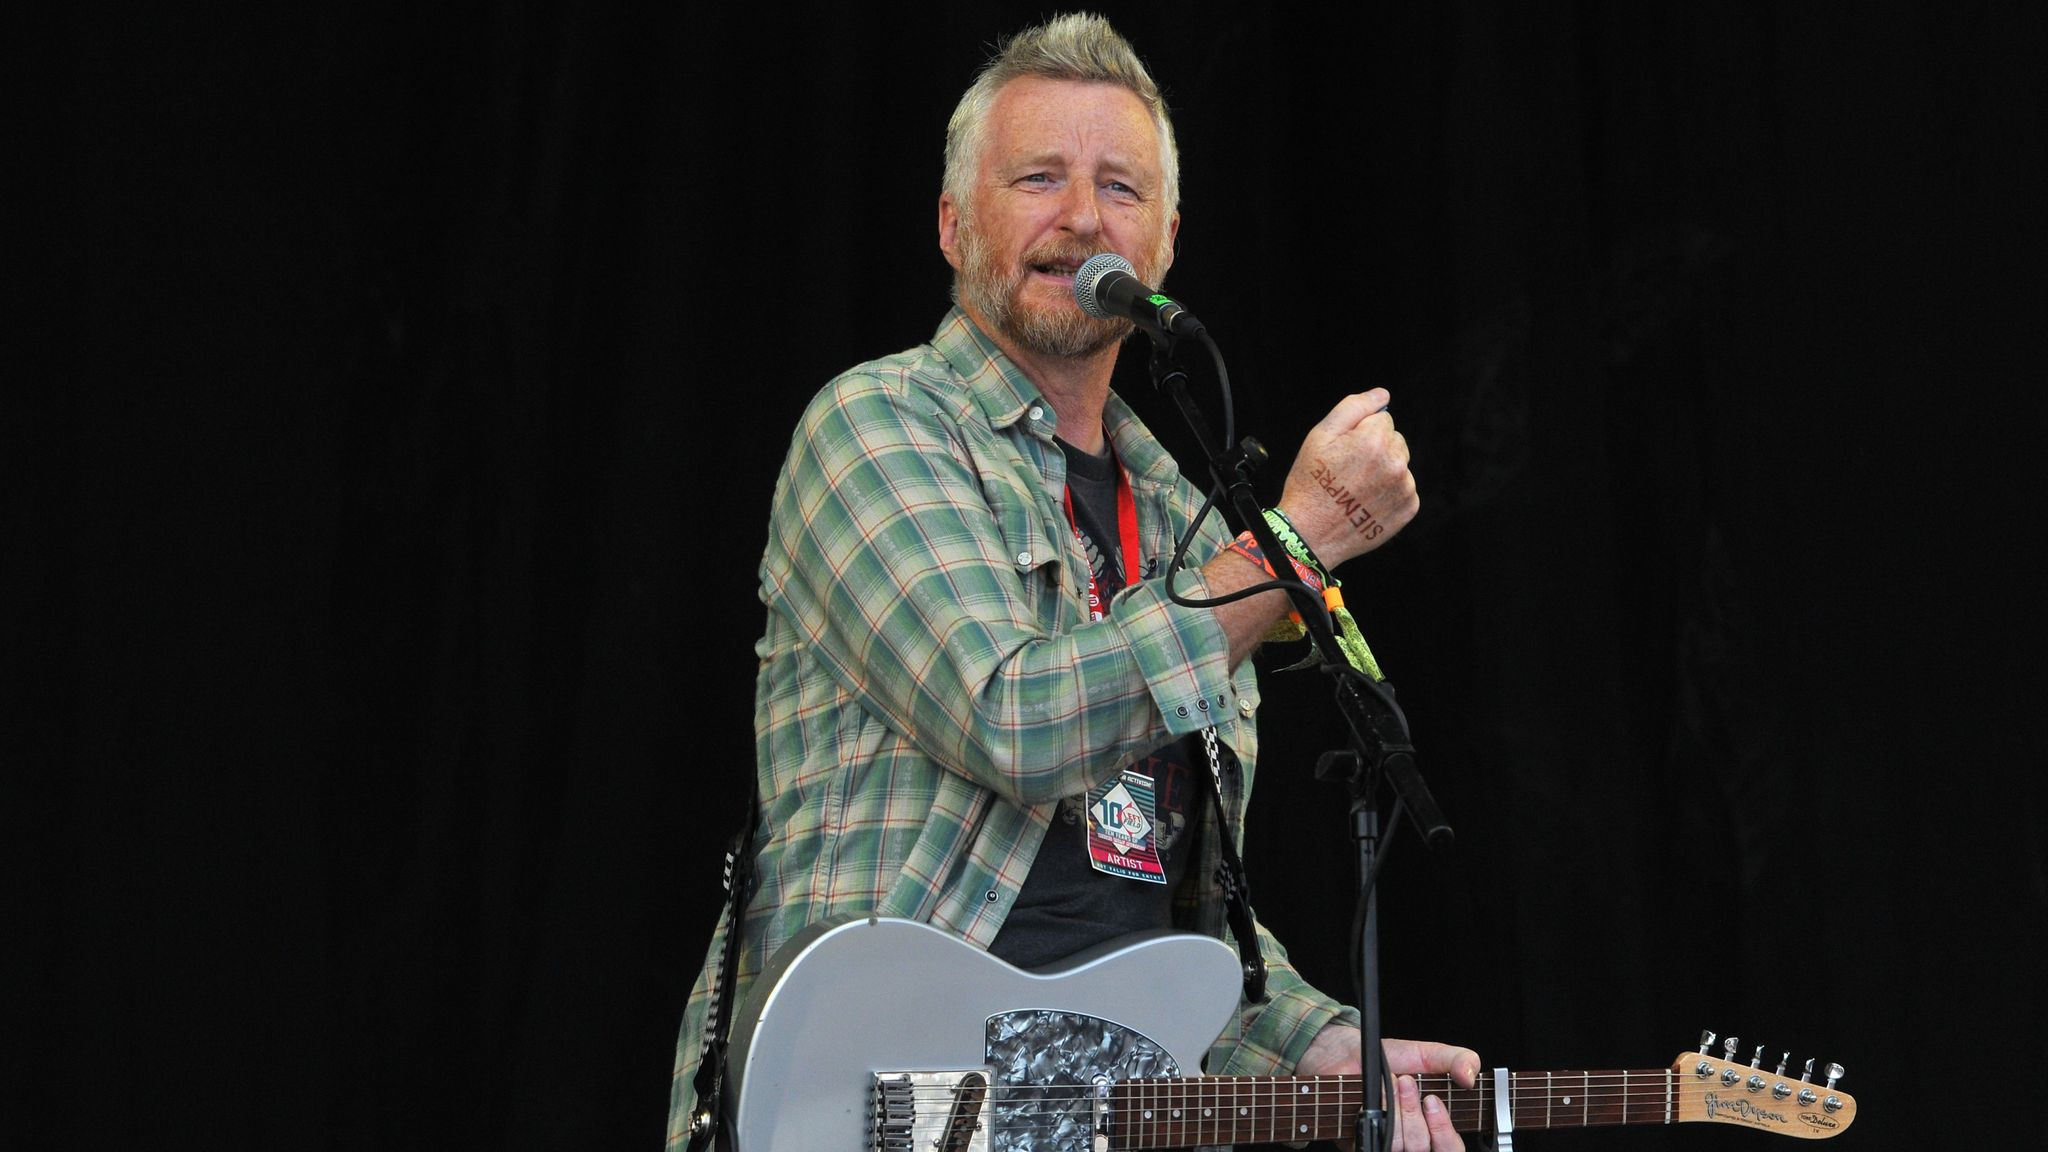 Billy Bragg performs on the Pyramid stage during day three of the Glastonbury Festival at Worthy Farm in Pilton on June 29, 2014 in Glastonbury, England